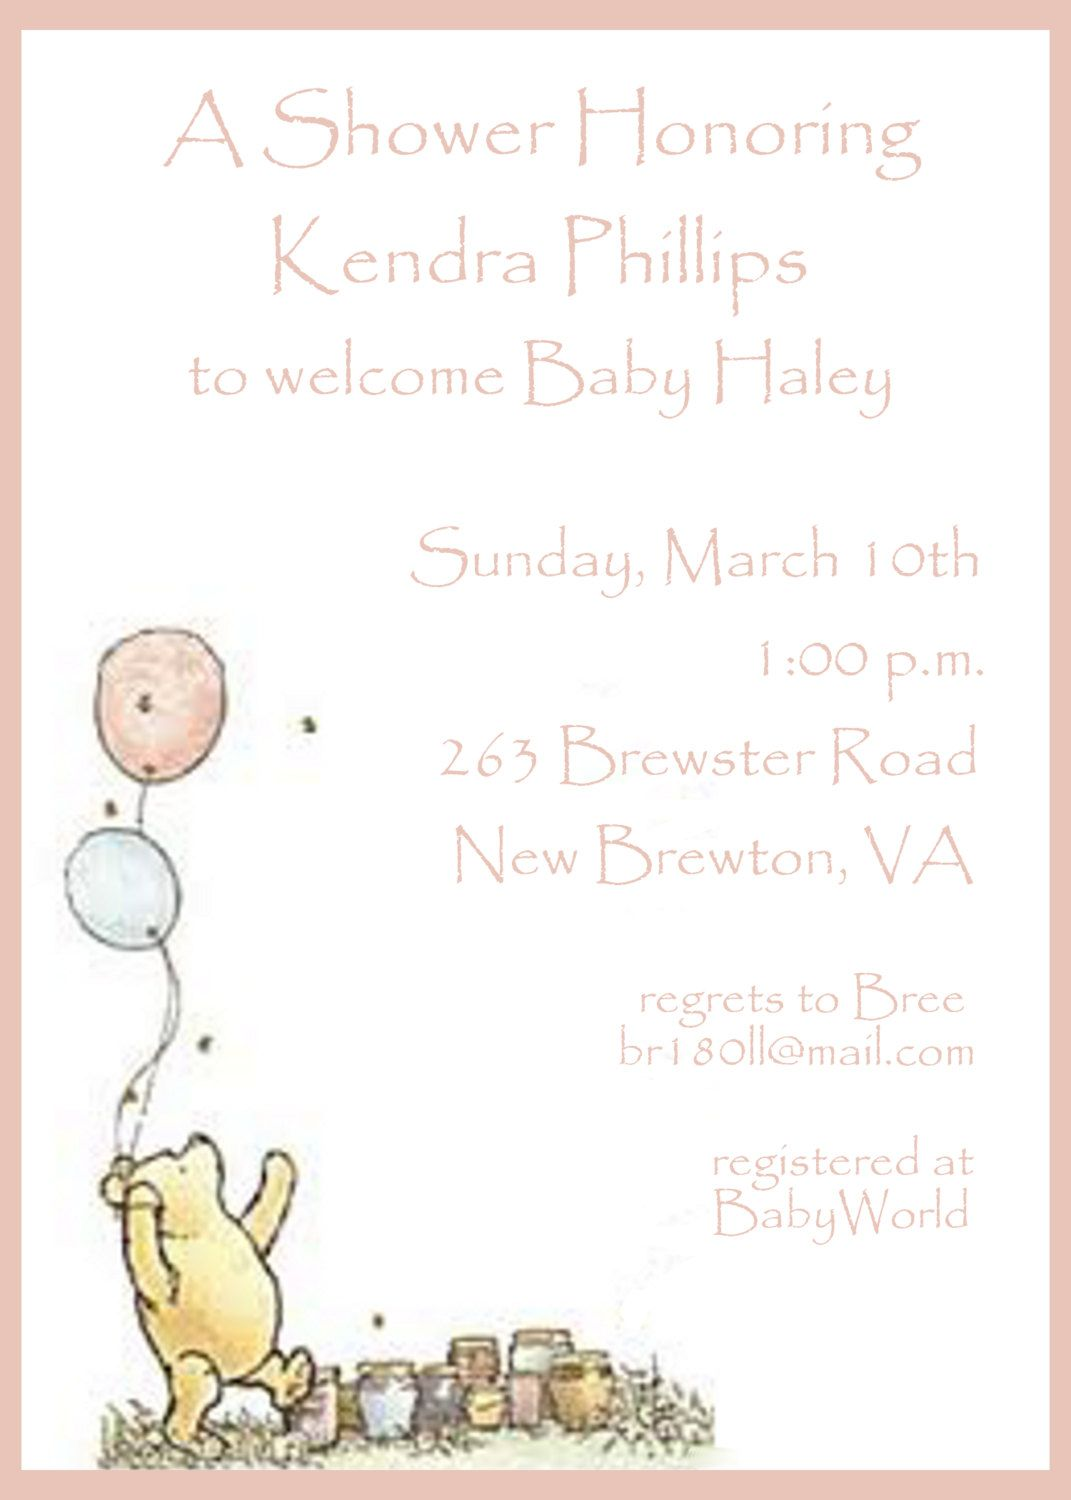 Baby Shower Invitation Winnie The Pooh By Celebrationspaperie 11 00 Vintage Winnie The Pooh Baby Shower Invitation Templates Baby Bear Baby Shower